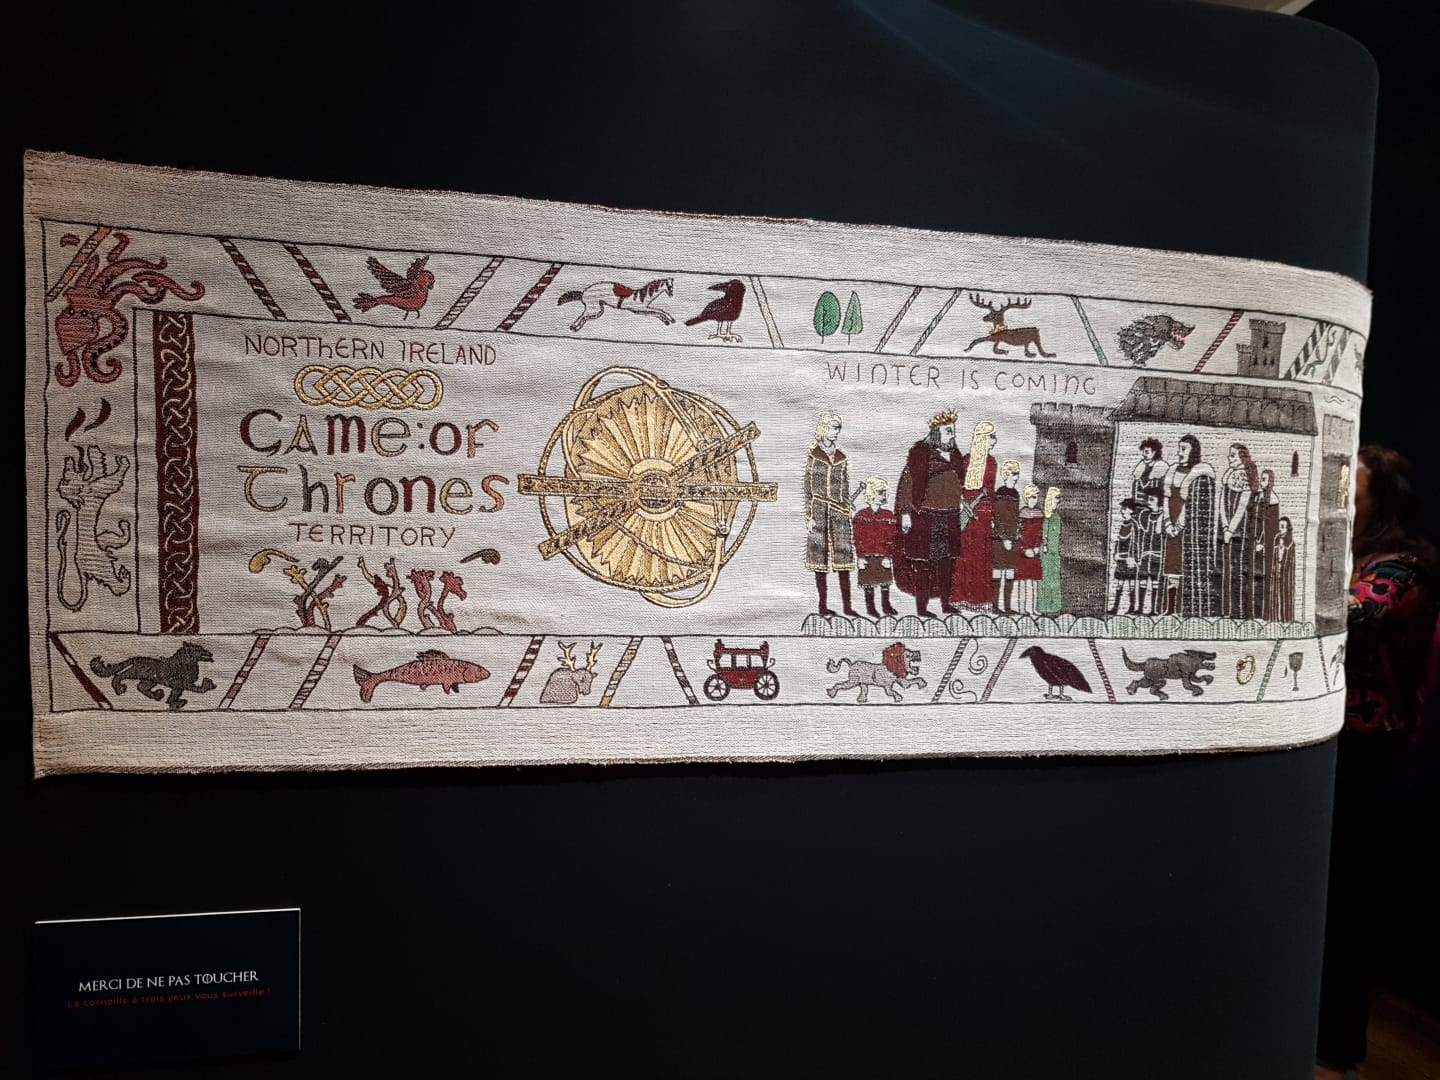 GAME OF THRONES A BAYEUX